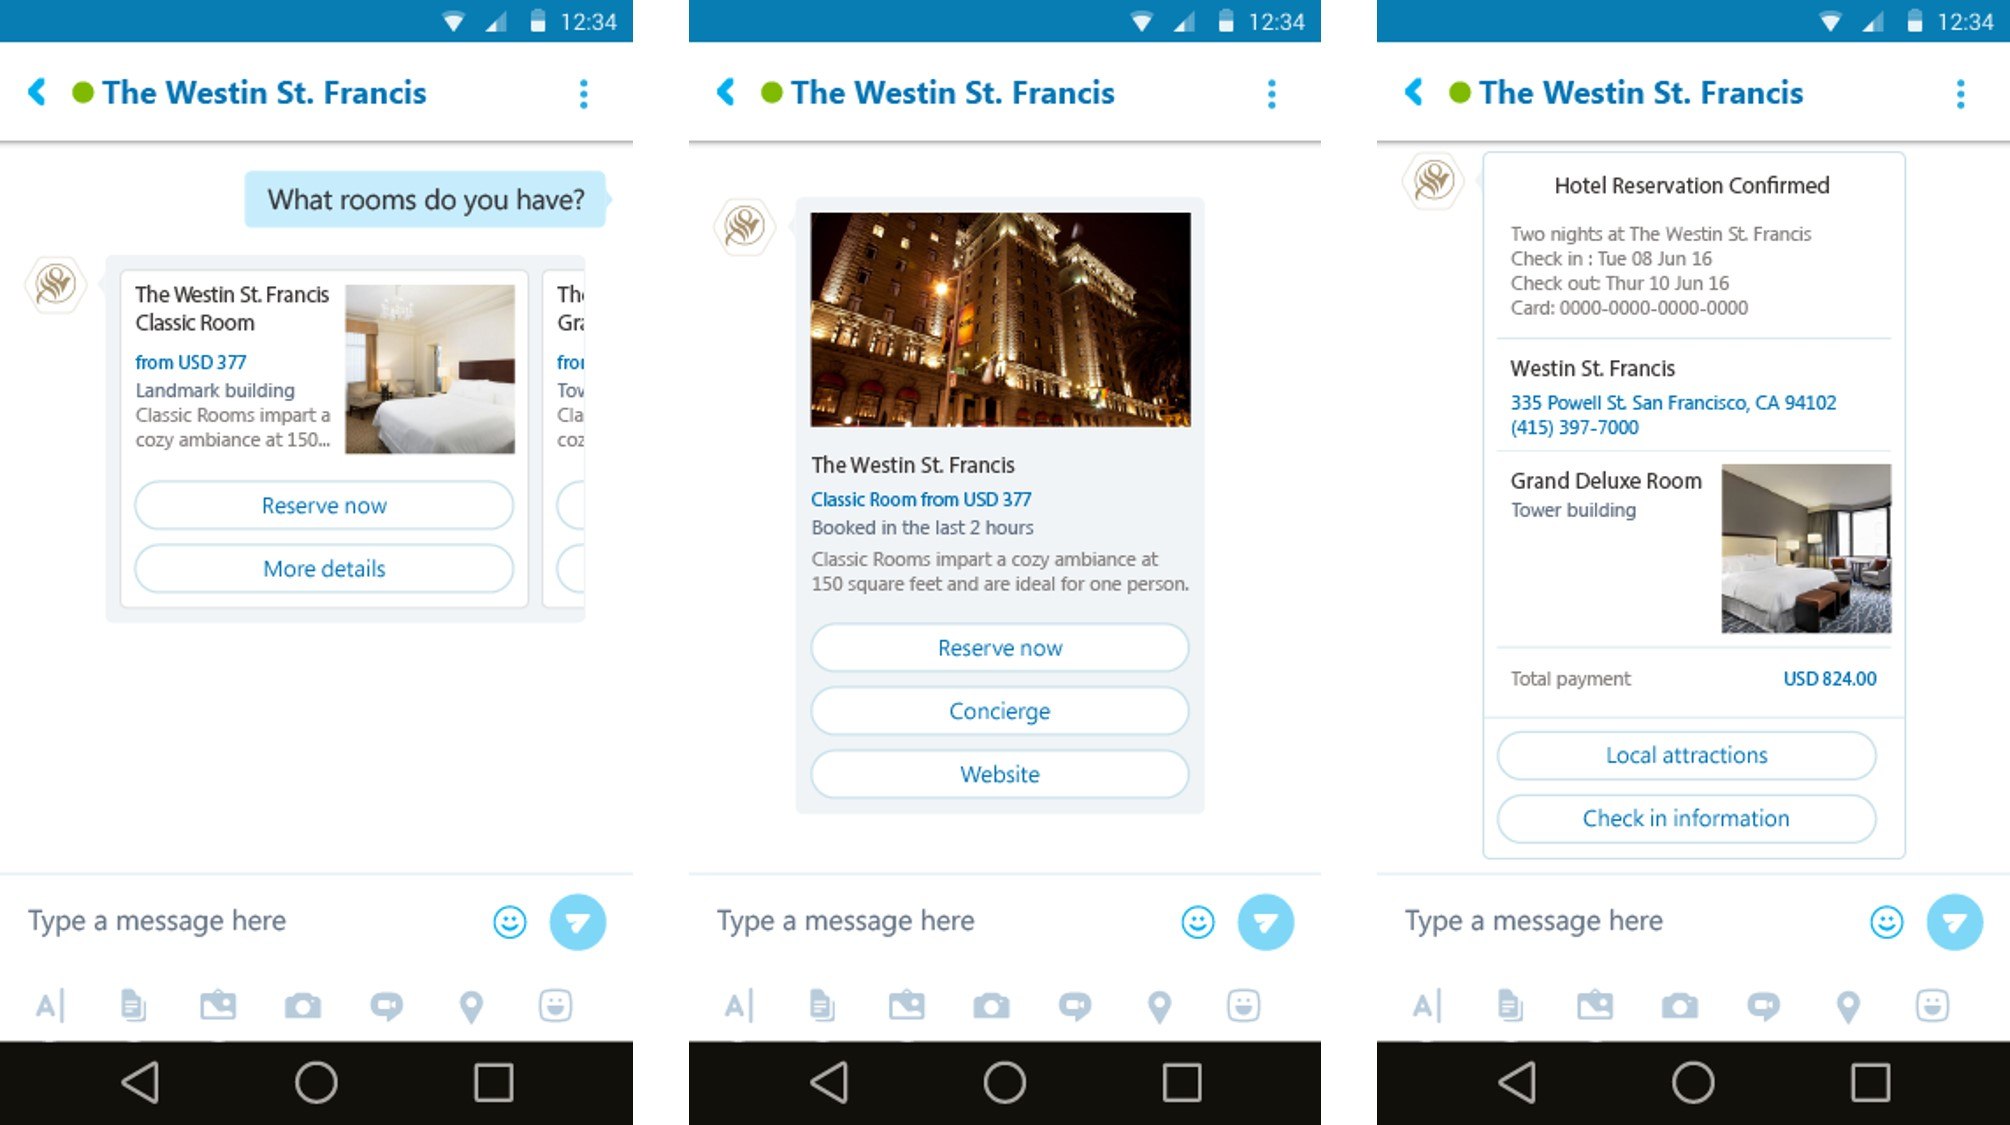 New kind of cards in which chatbots can deliver messages in Skype.